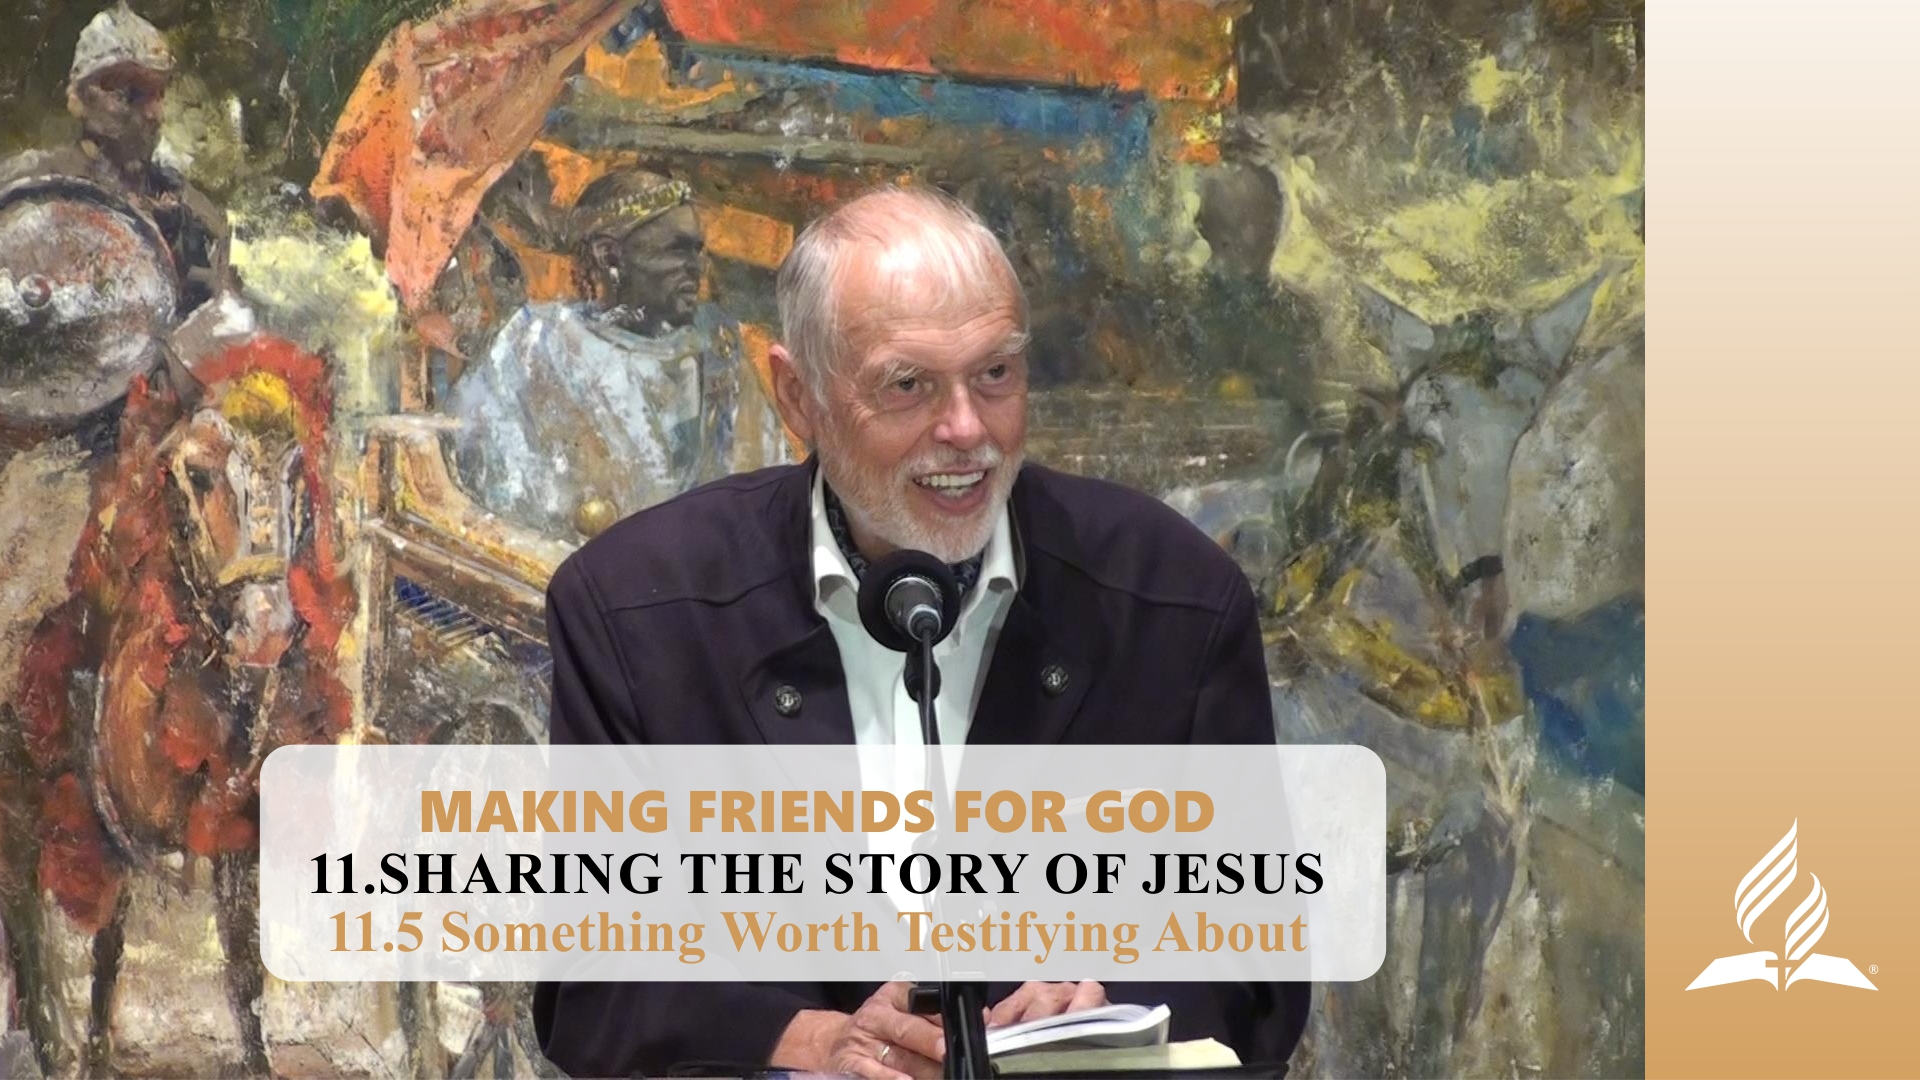 11.5 Something Worth Testifying About – SHARING THE STORY OF JESUS | Pastor Kurt Piesslinger, M.A.